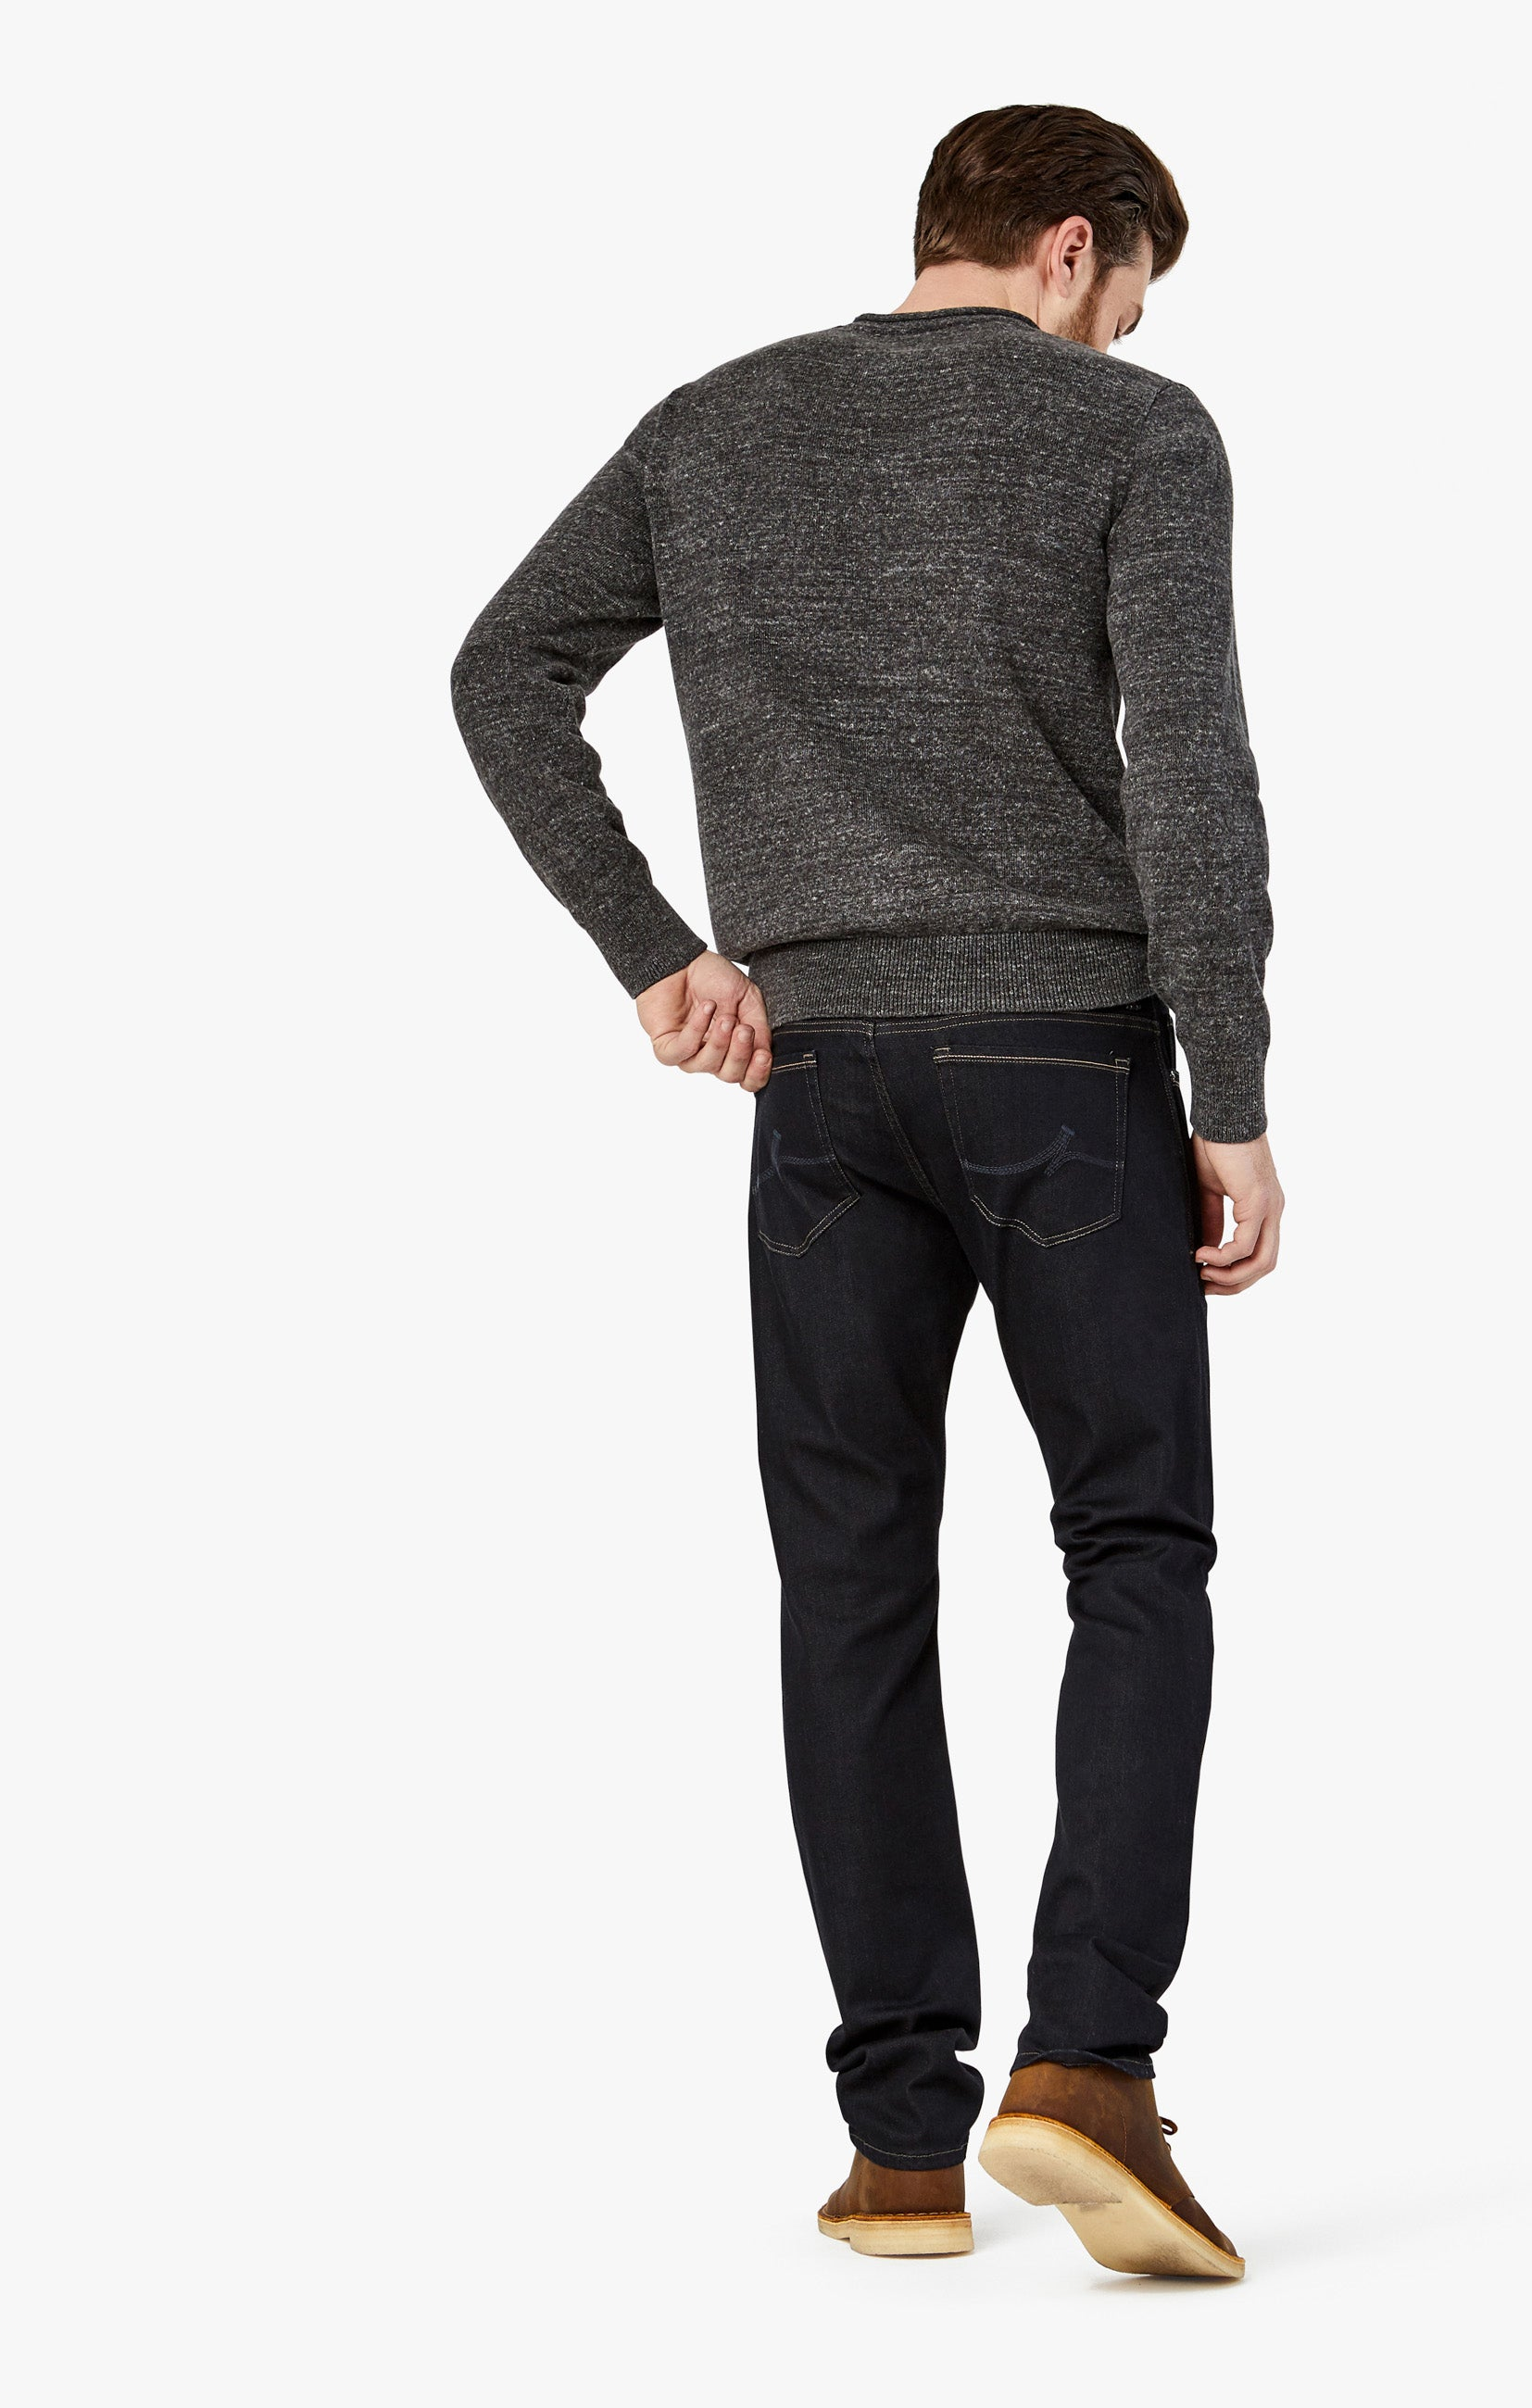 Courage Straight Leg Jeans in Midnight Rome Image 1